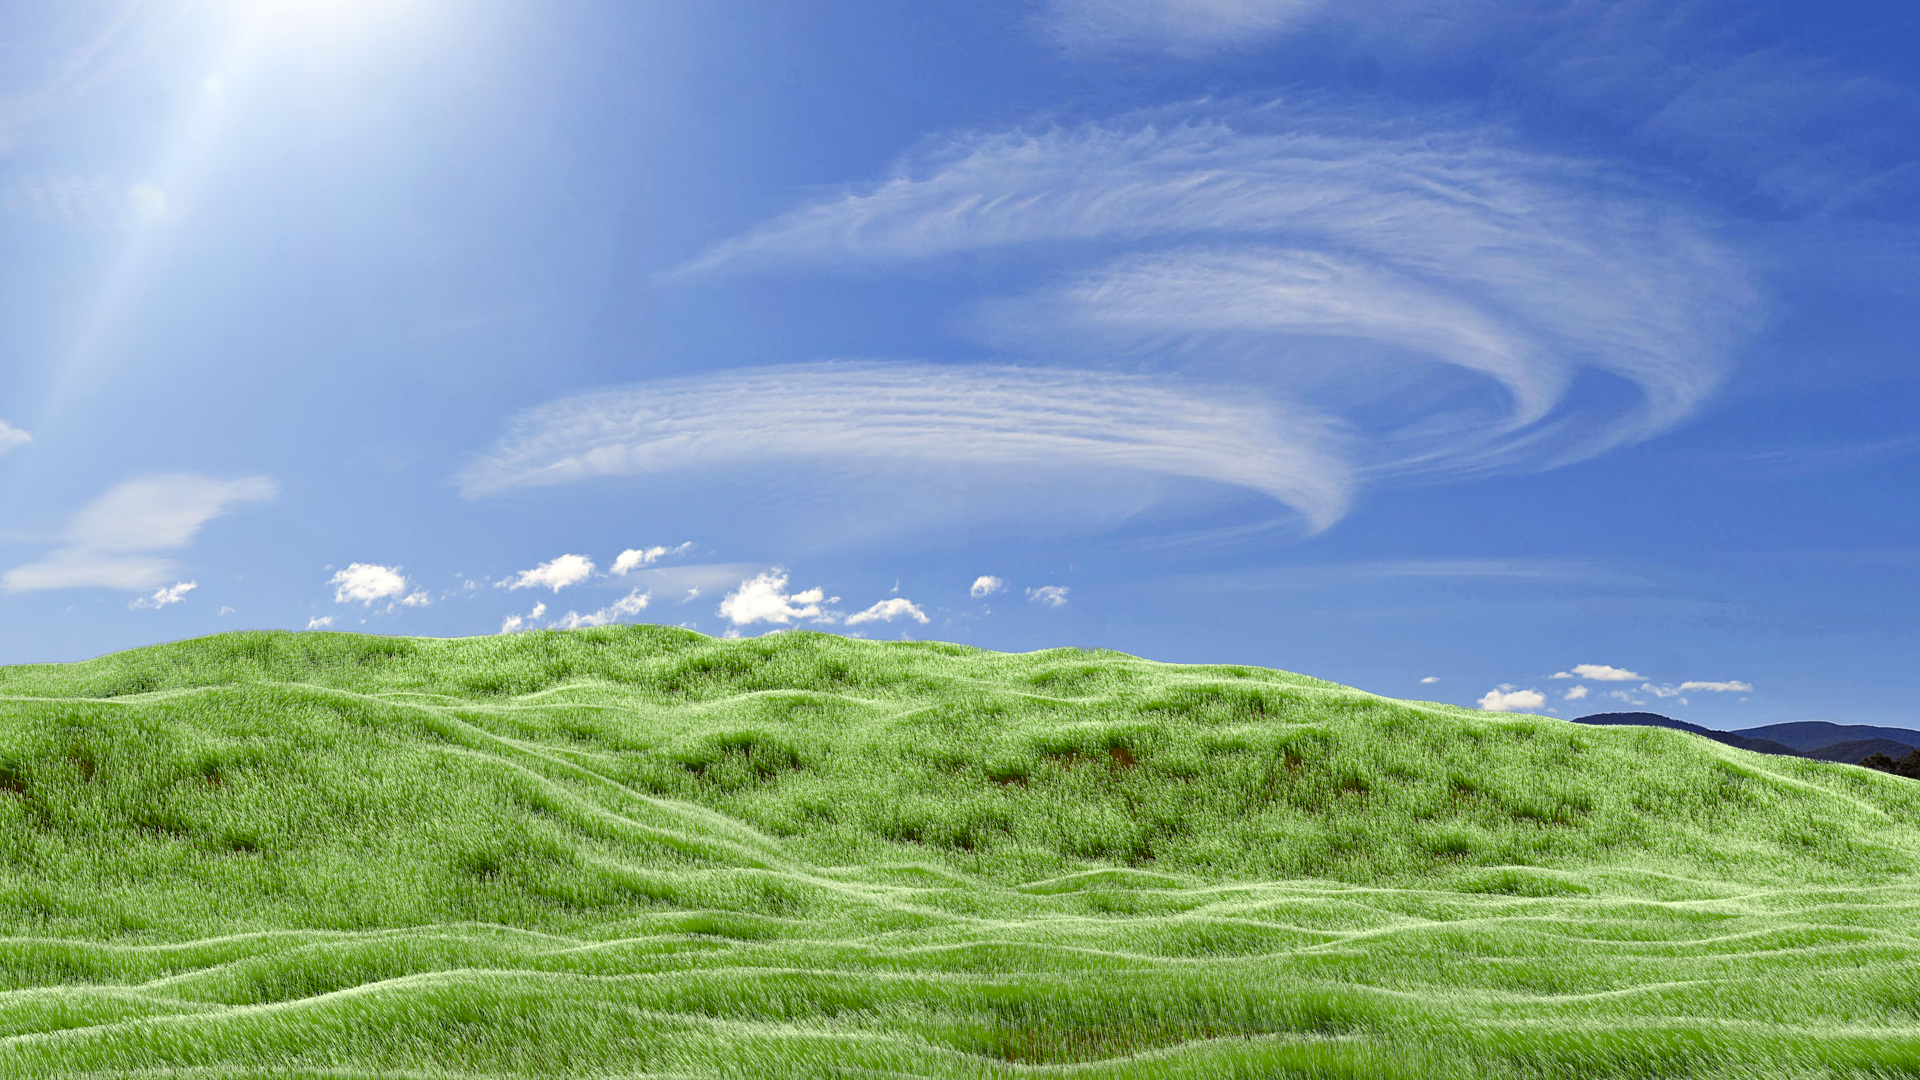 A Recreation of the Classic Windows XP Wallpaper in Blender